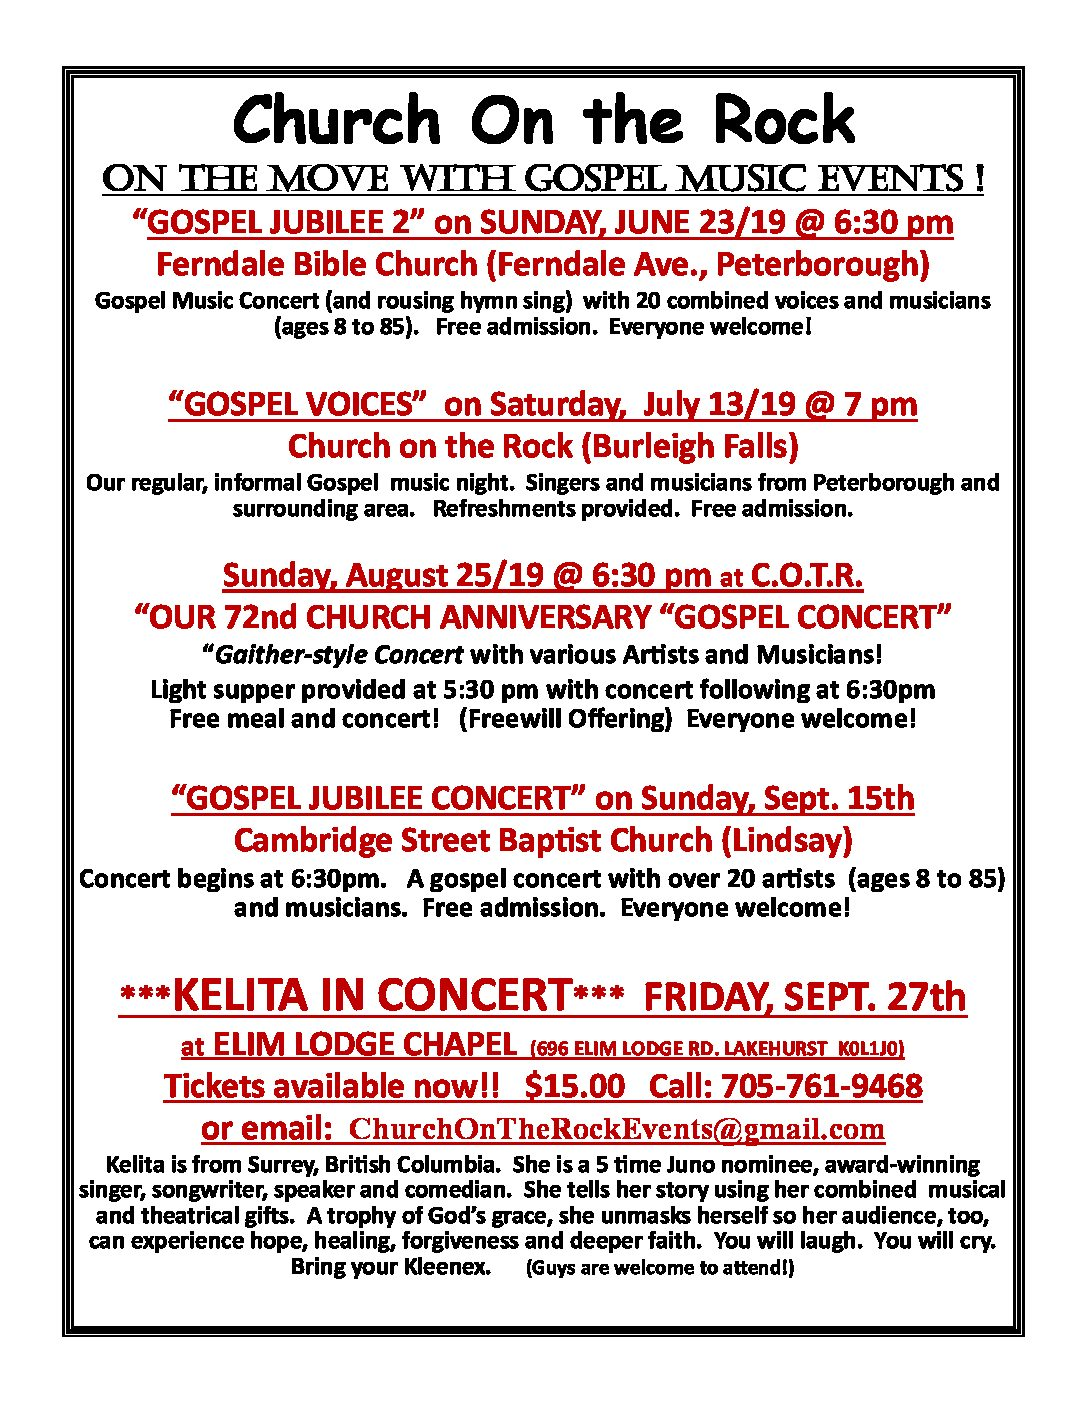 Gospel Jubilee Concert - Ferndale Bible Church